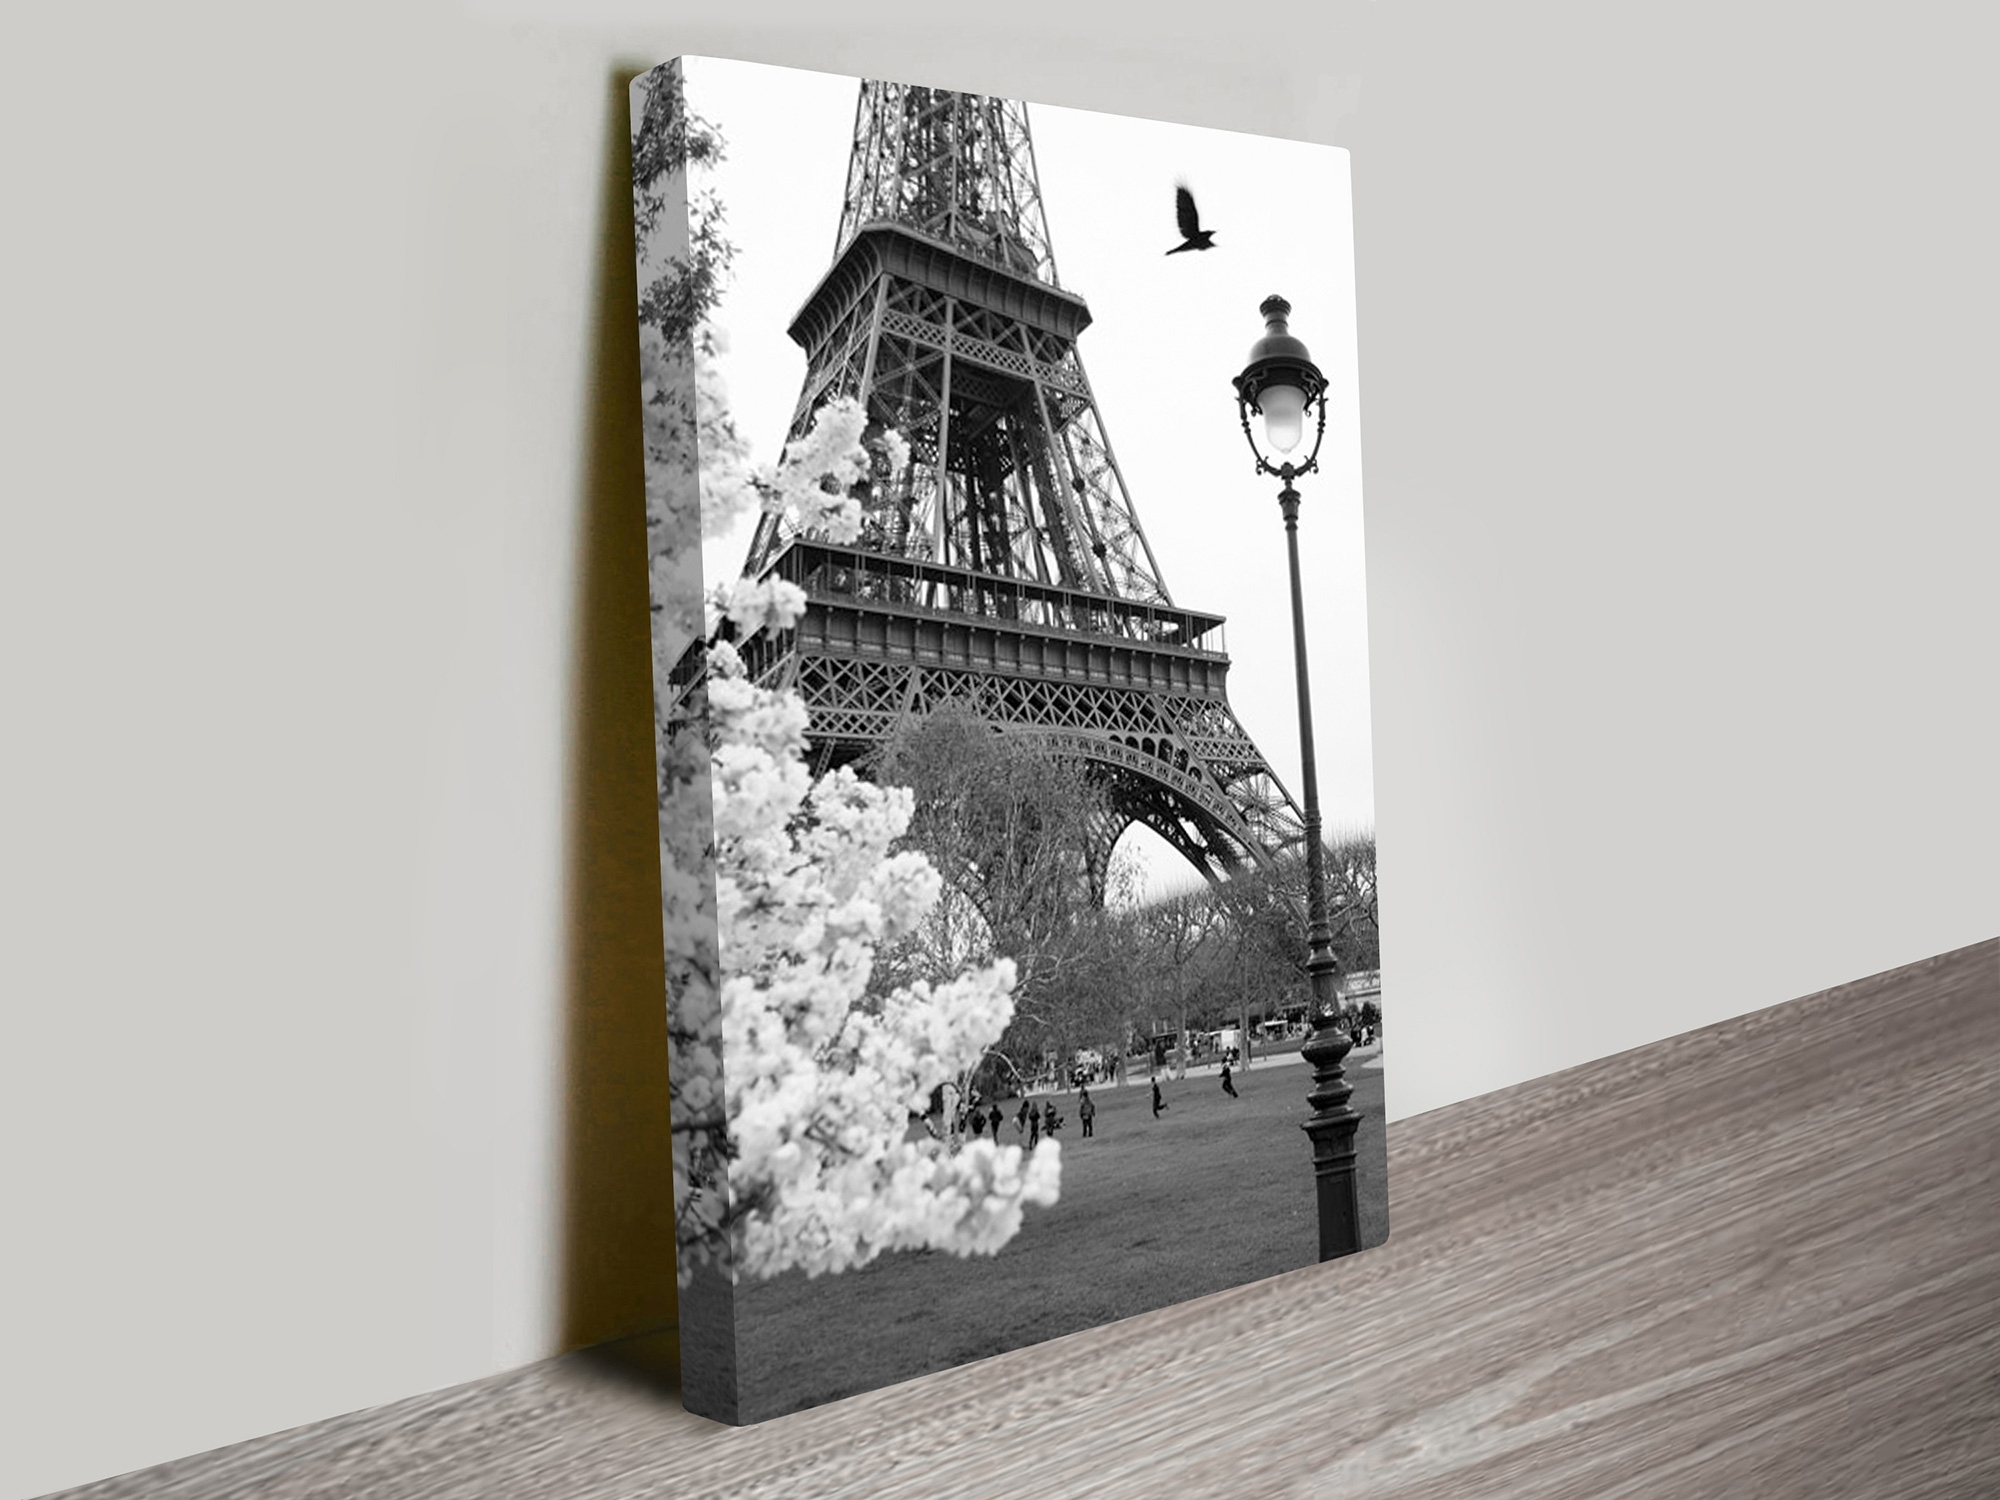 Eiffel Tower Portrait Canvas Artwork Regarding Most Up To Date Eiffel Tower Wall Art (View 3 of 15)